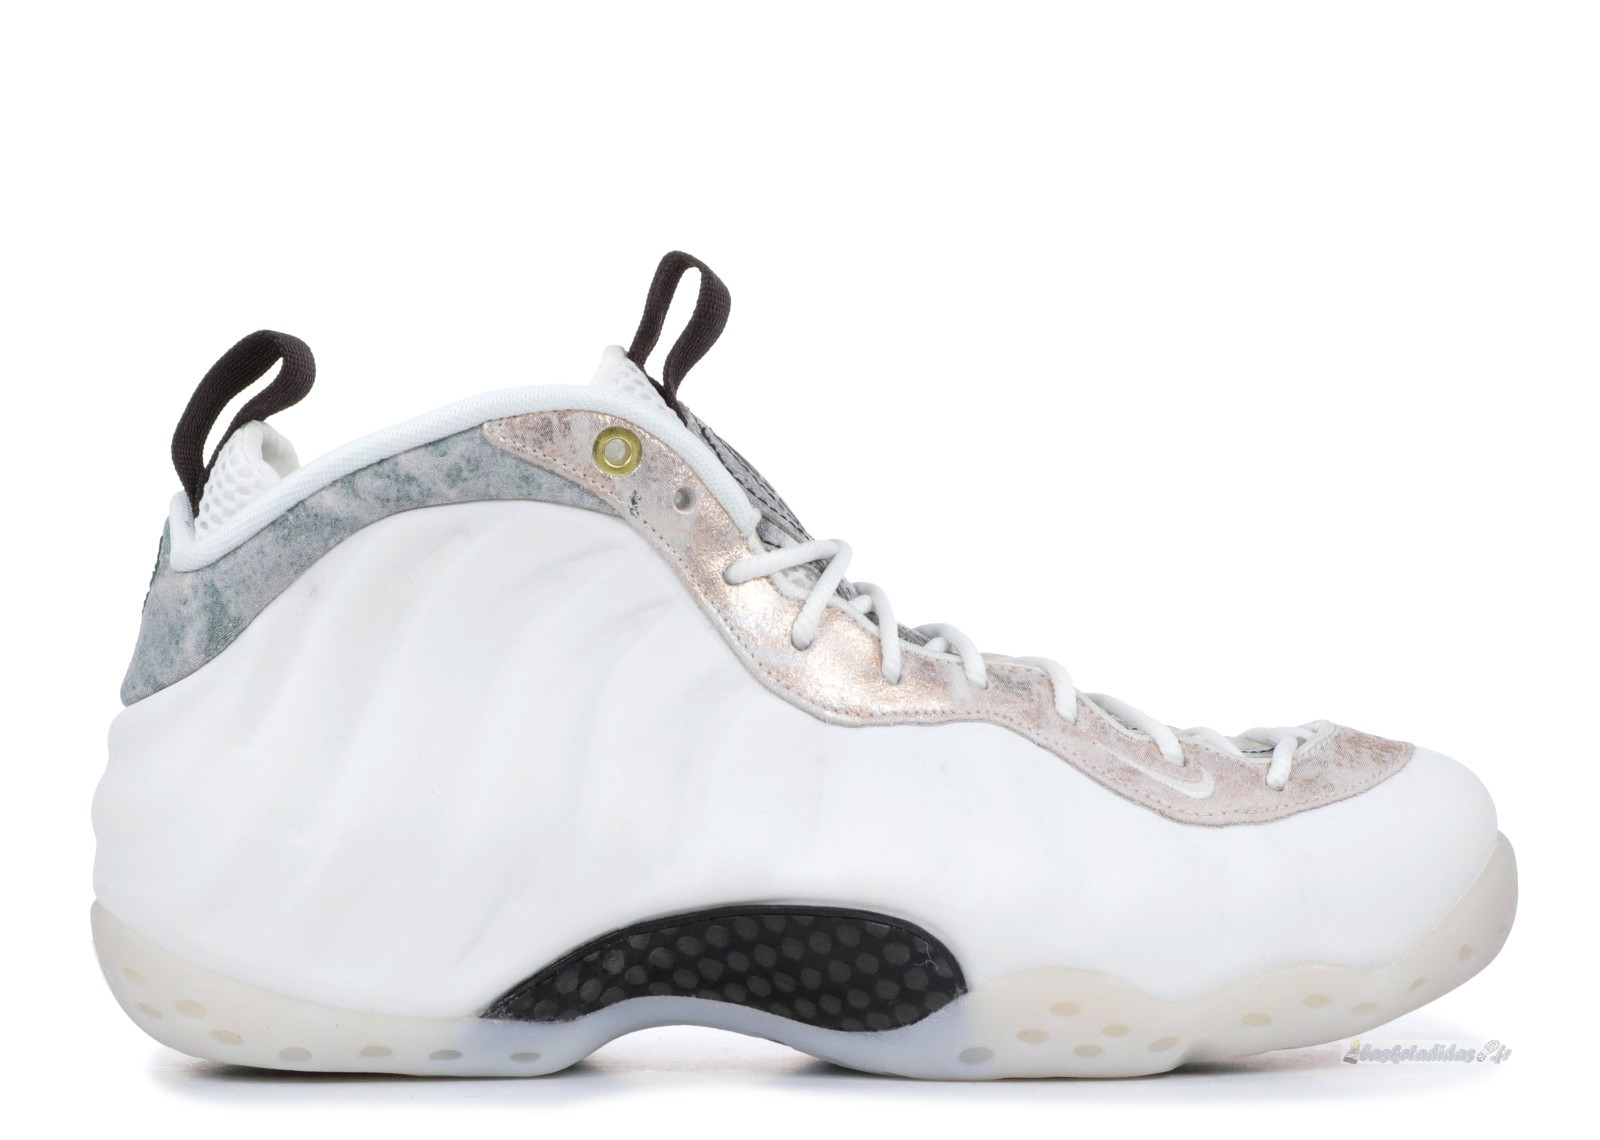 Chaussure de Basket Nike Air Foamposite One Femme Blanc (aa3963-101)